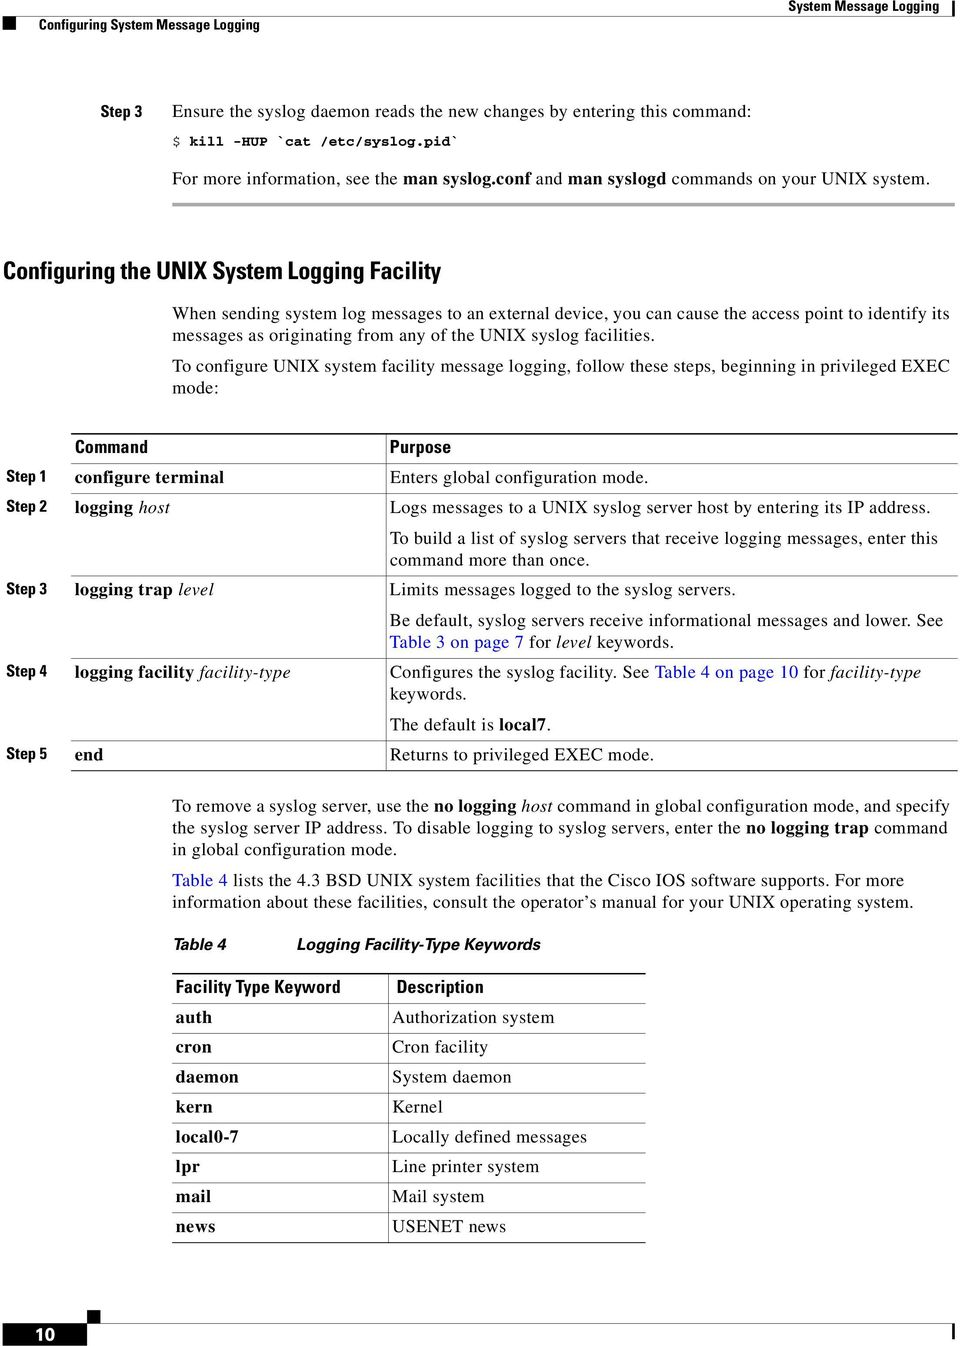 Configuring the UNIX System Logging Facility When sending system log messages to an external device, you can cause the access point to identify its messages as originating from any of the UNIX syslog